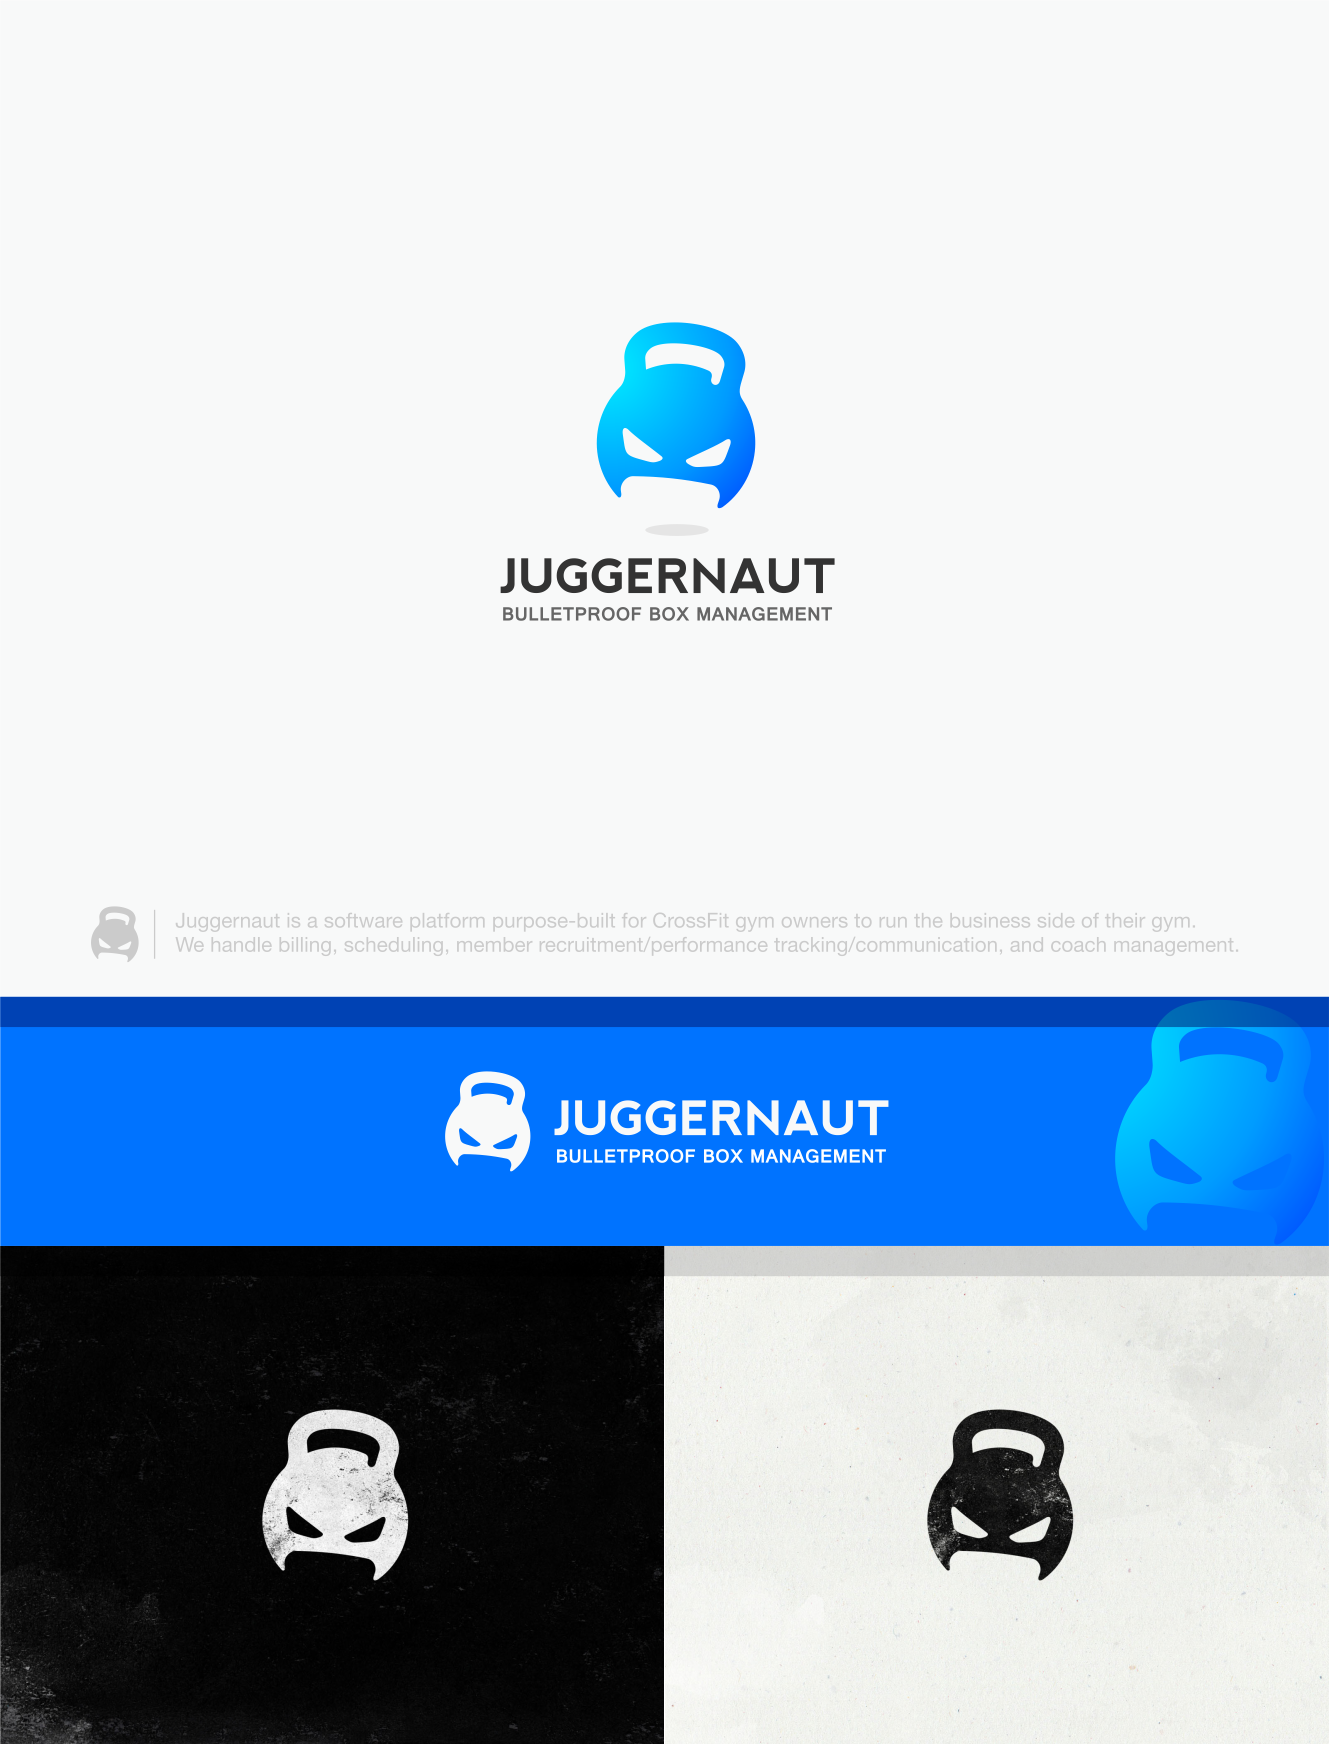 Create a logo for Juggernaut, a fitness software platform